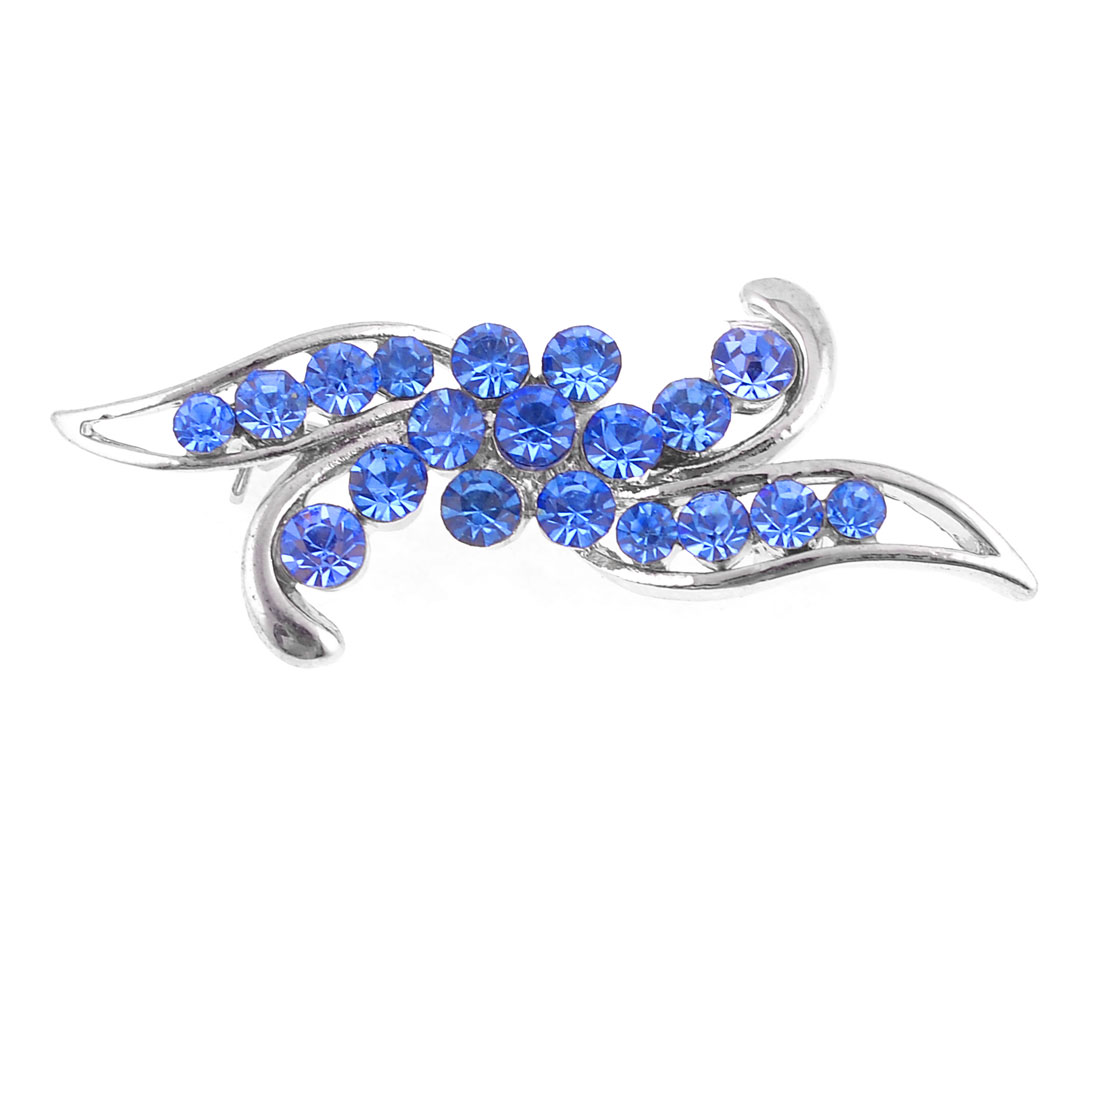 Women Dark Blue Plastic Rhinestones Accent Safety Pin Brooch Broach Dress Decor